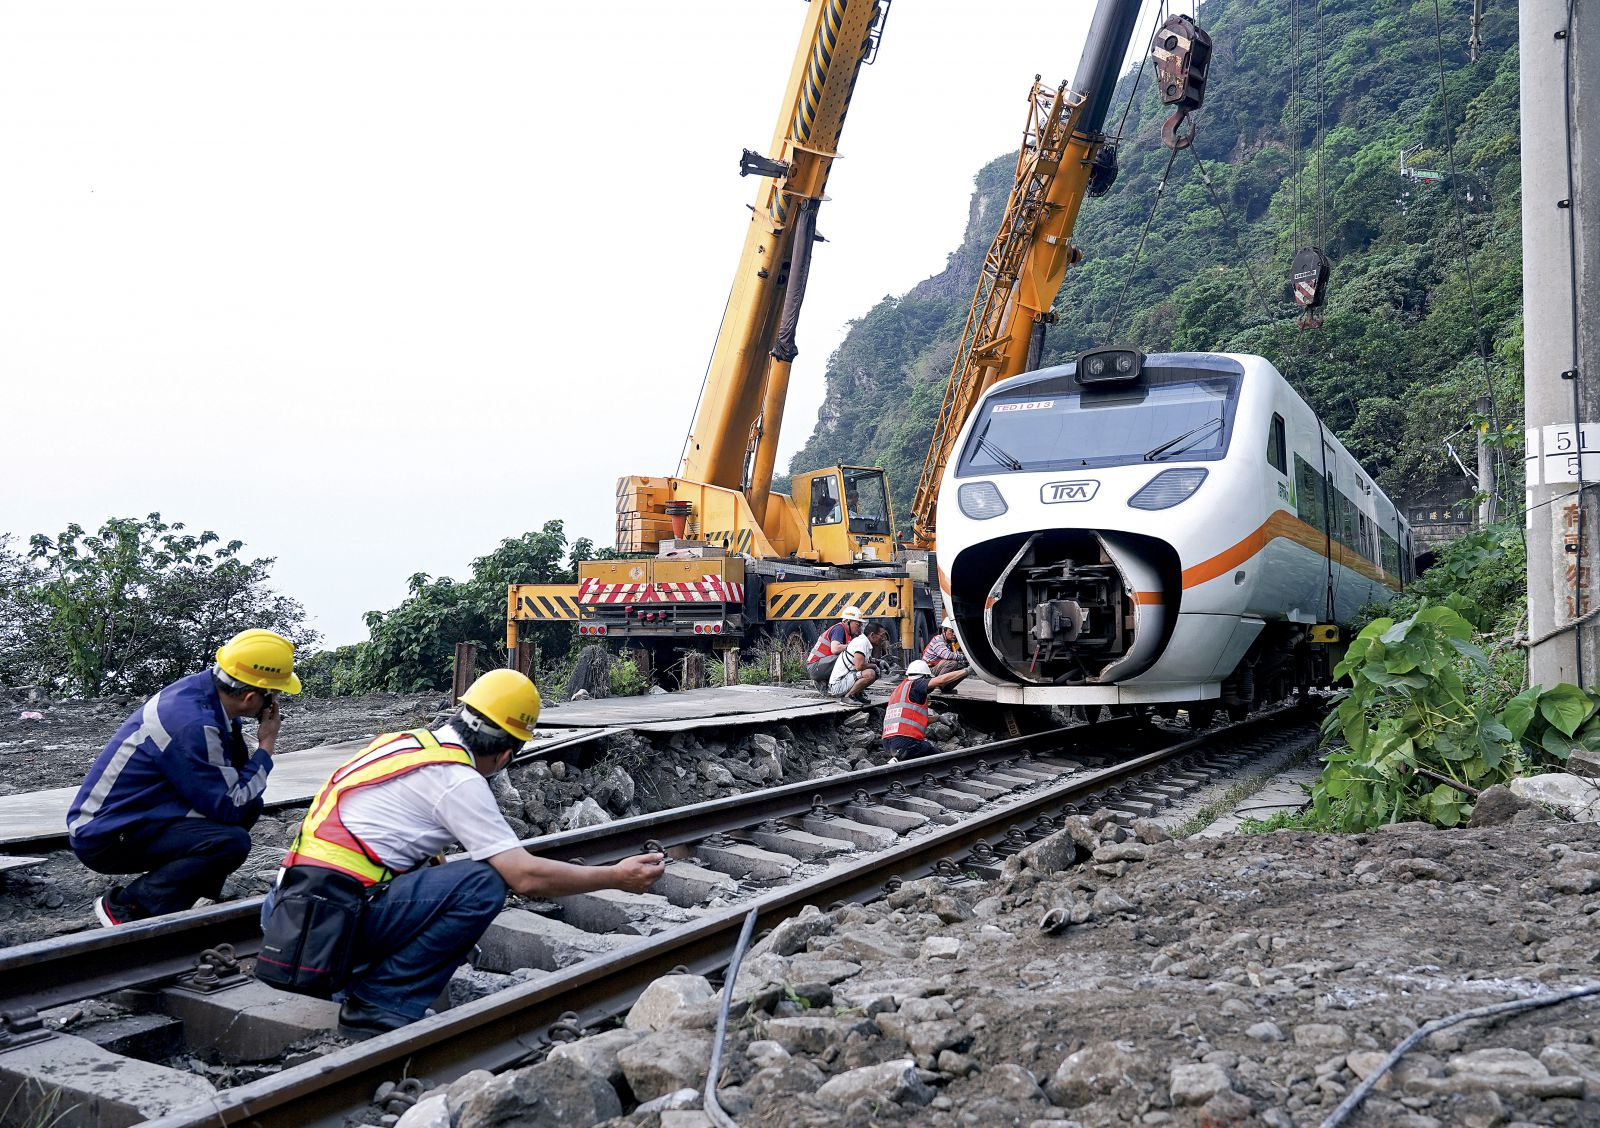 Comfort and Care in Action - Tzu Chi Responds to Taiwan's Train Crash